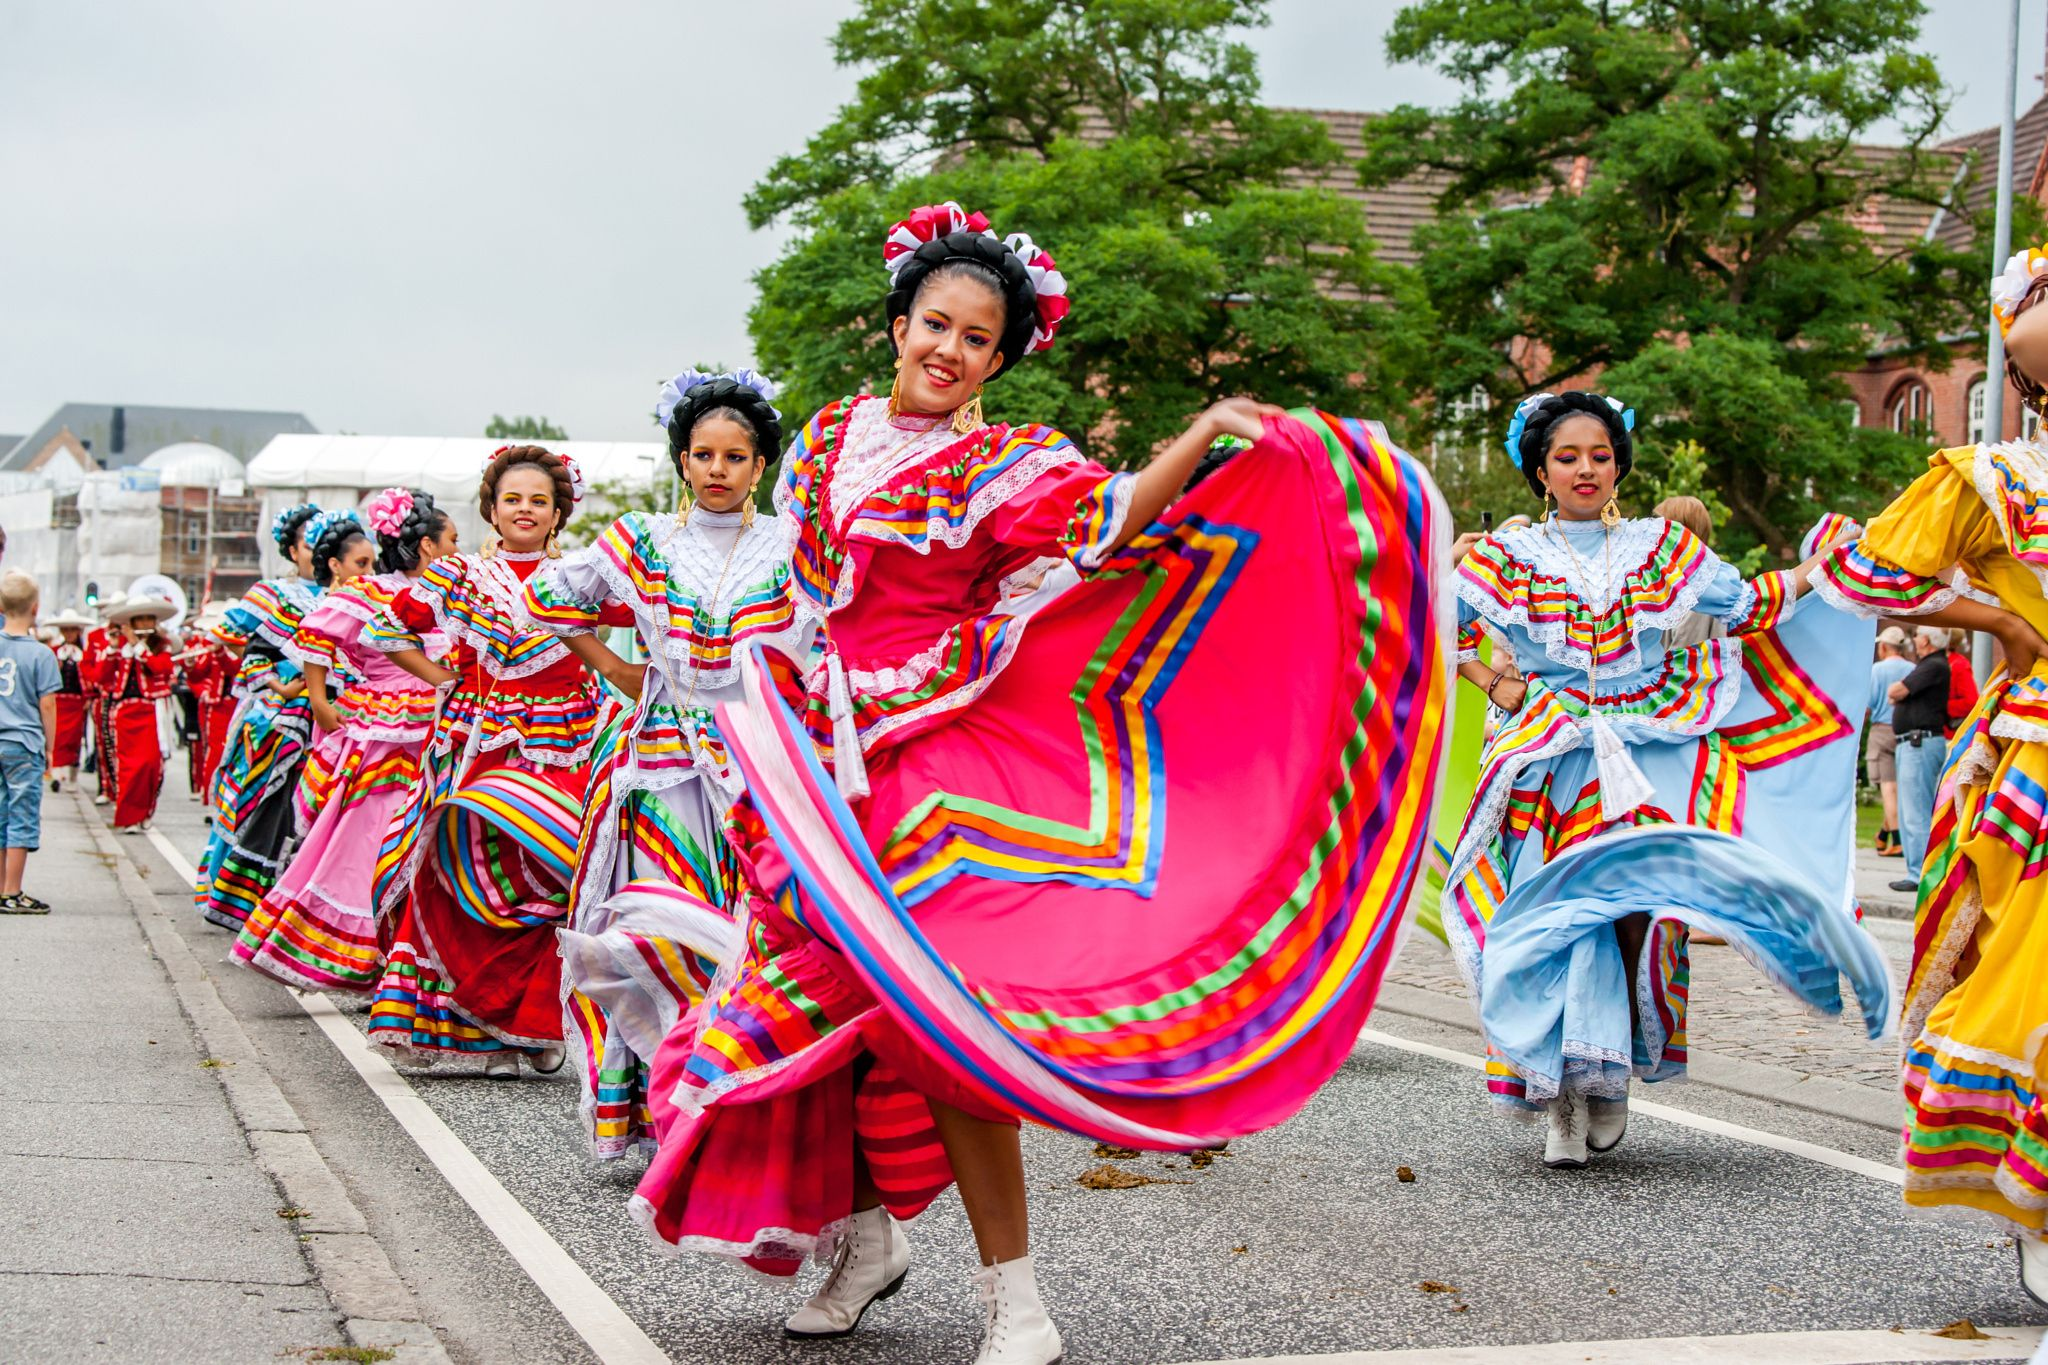 Mexican dance group in colorful dresses